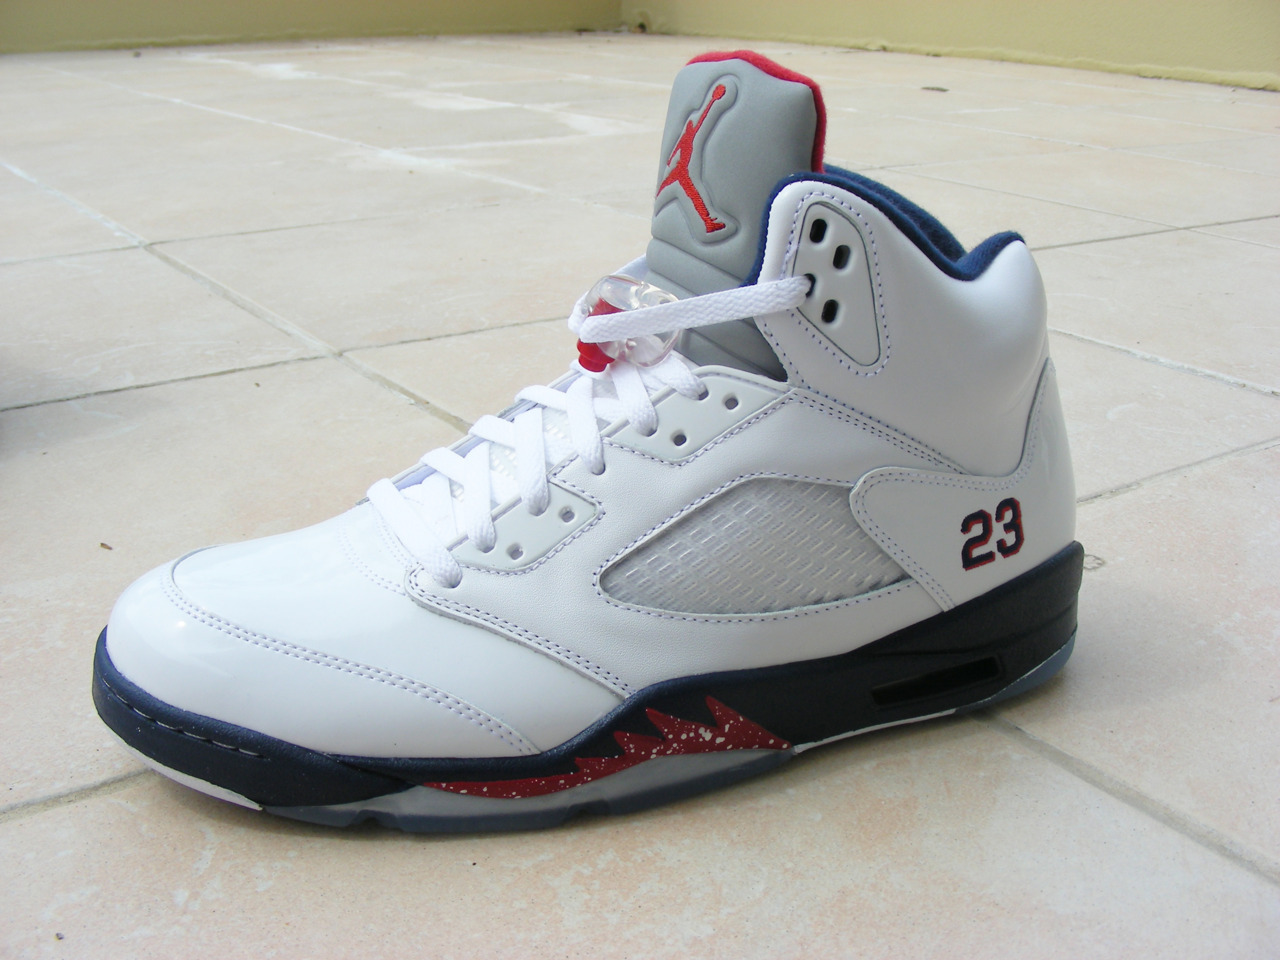 Air Jordan 5 White/Midnight Navy-Red. I got these for $154 since Foot Locker had an awesome 30% off for Christmas ^^